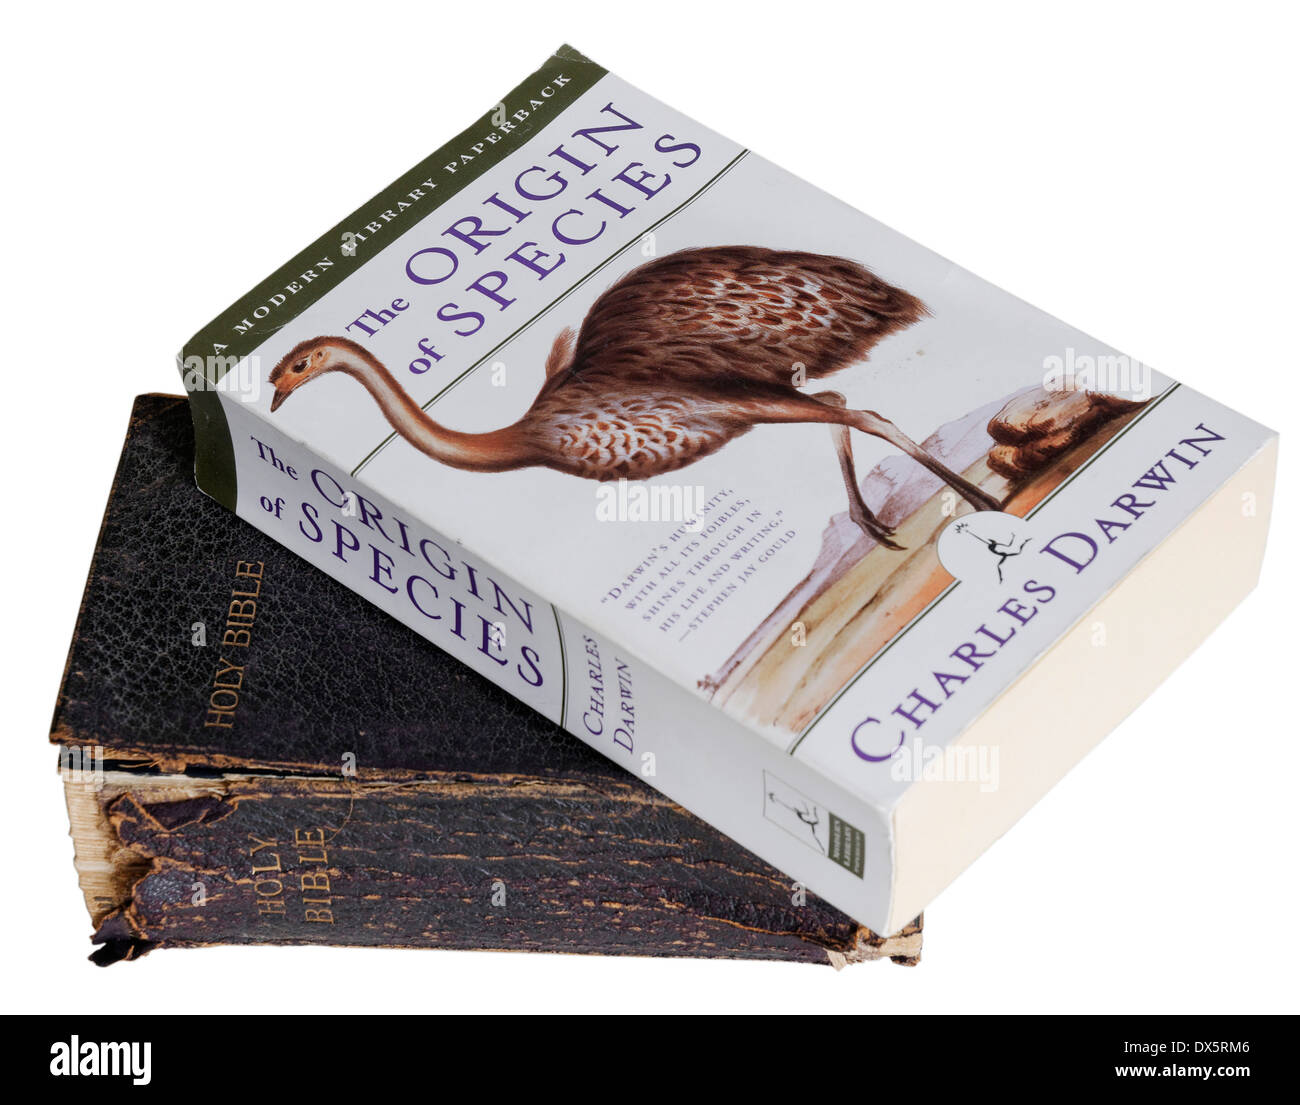 The Origin of Species by Charles Darwin and the bible - Stock Image